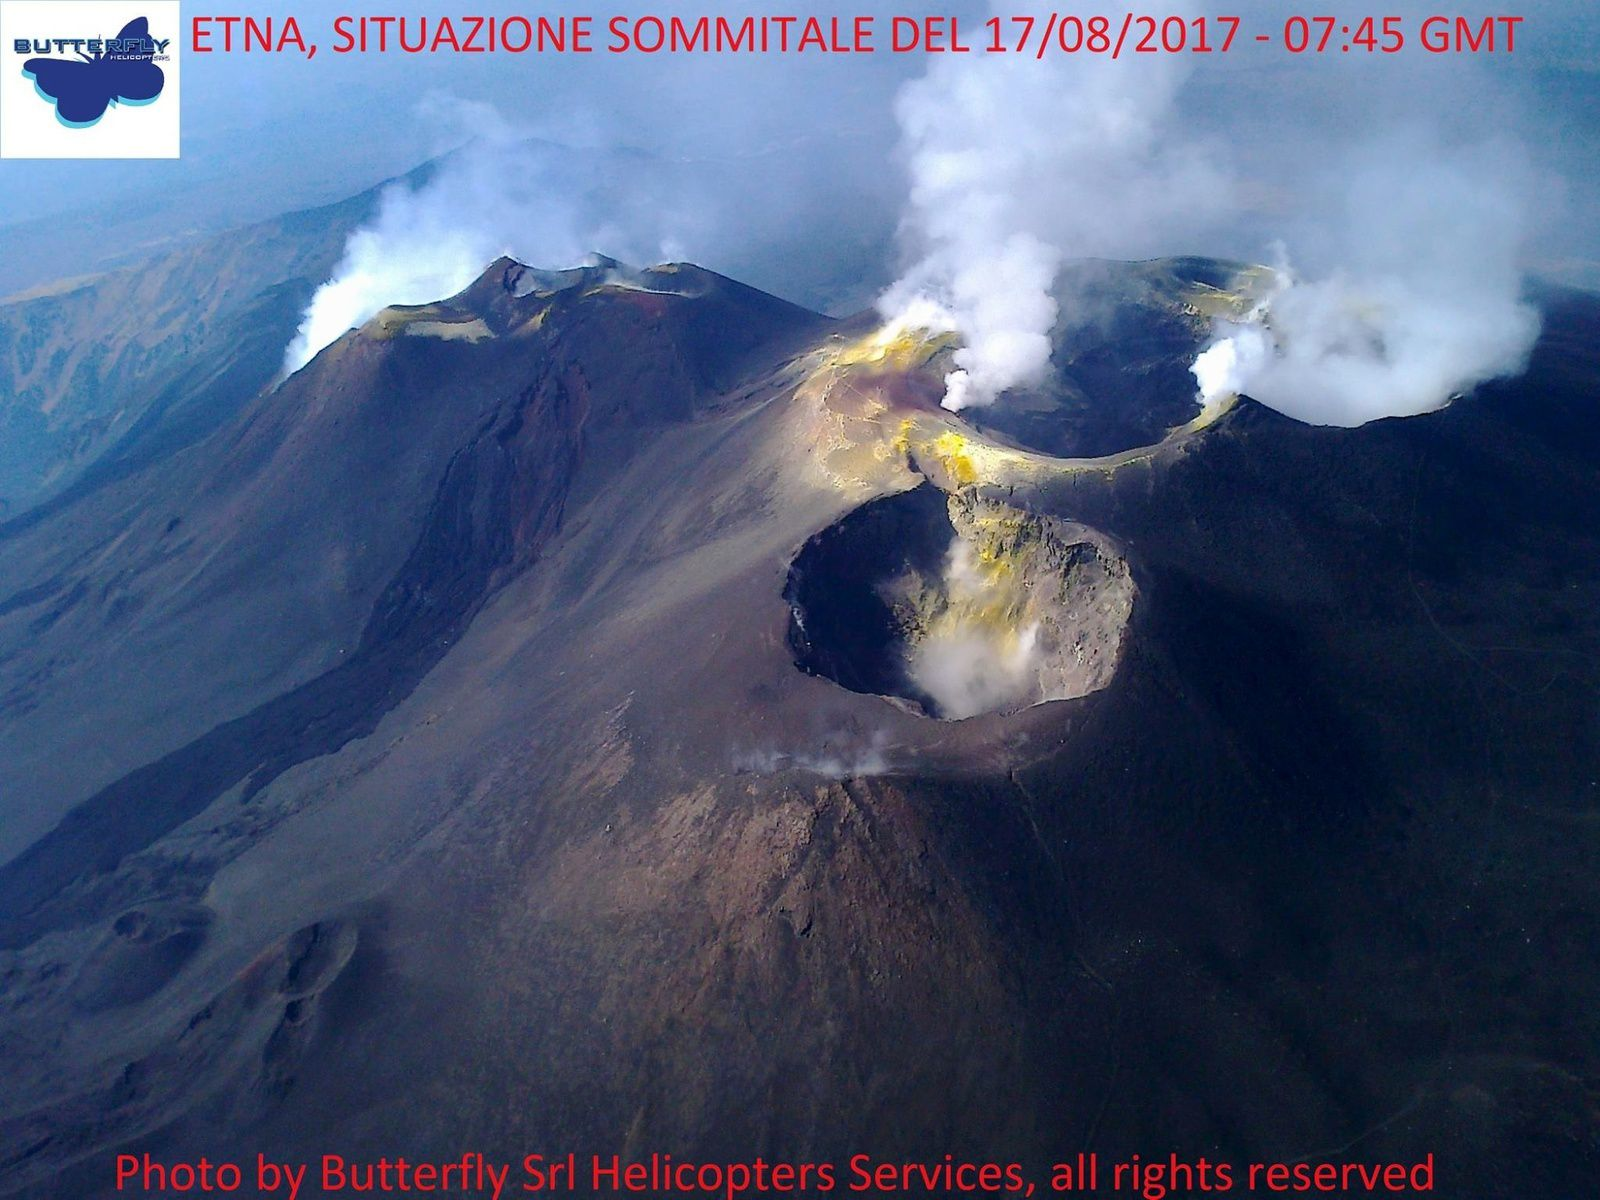 the summit craters of Mount Etna on 17.08.2017 / 7.45 GMT - Photo Joseph Nasi / Butterfly Helicopters Services